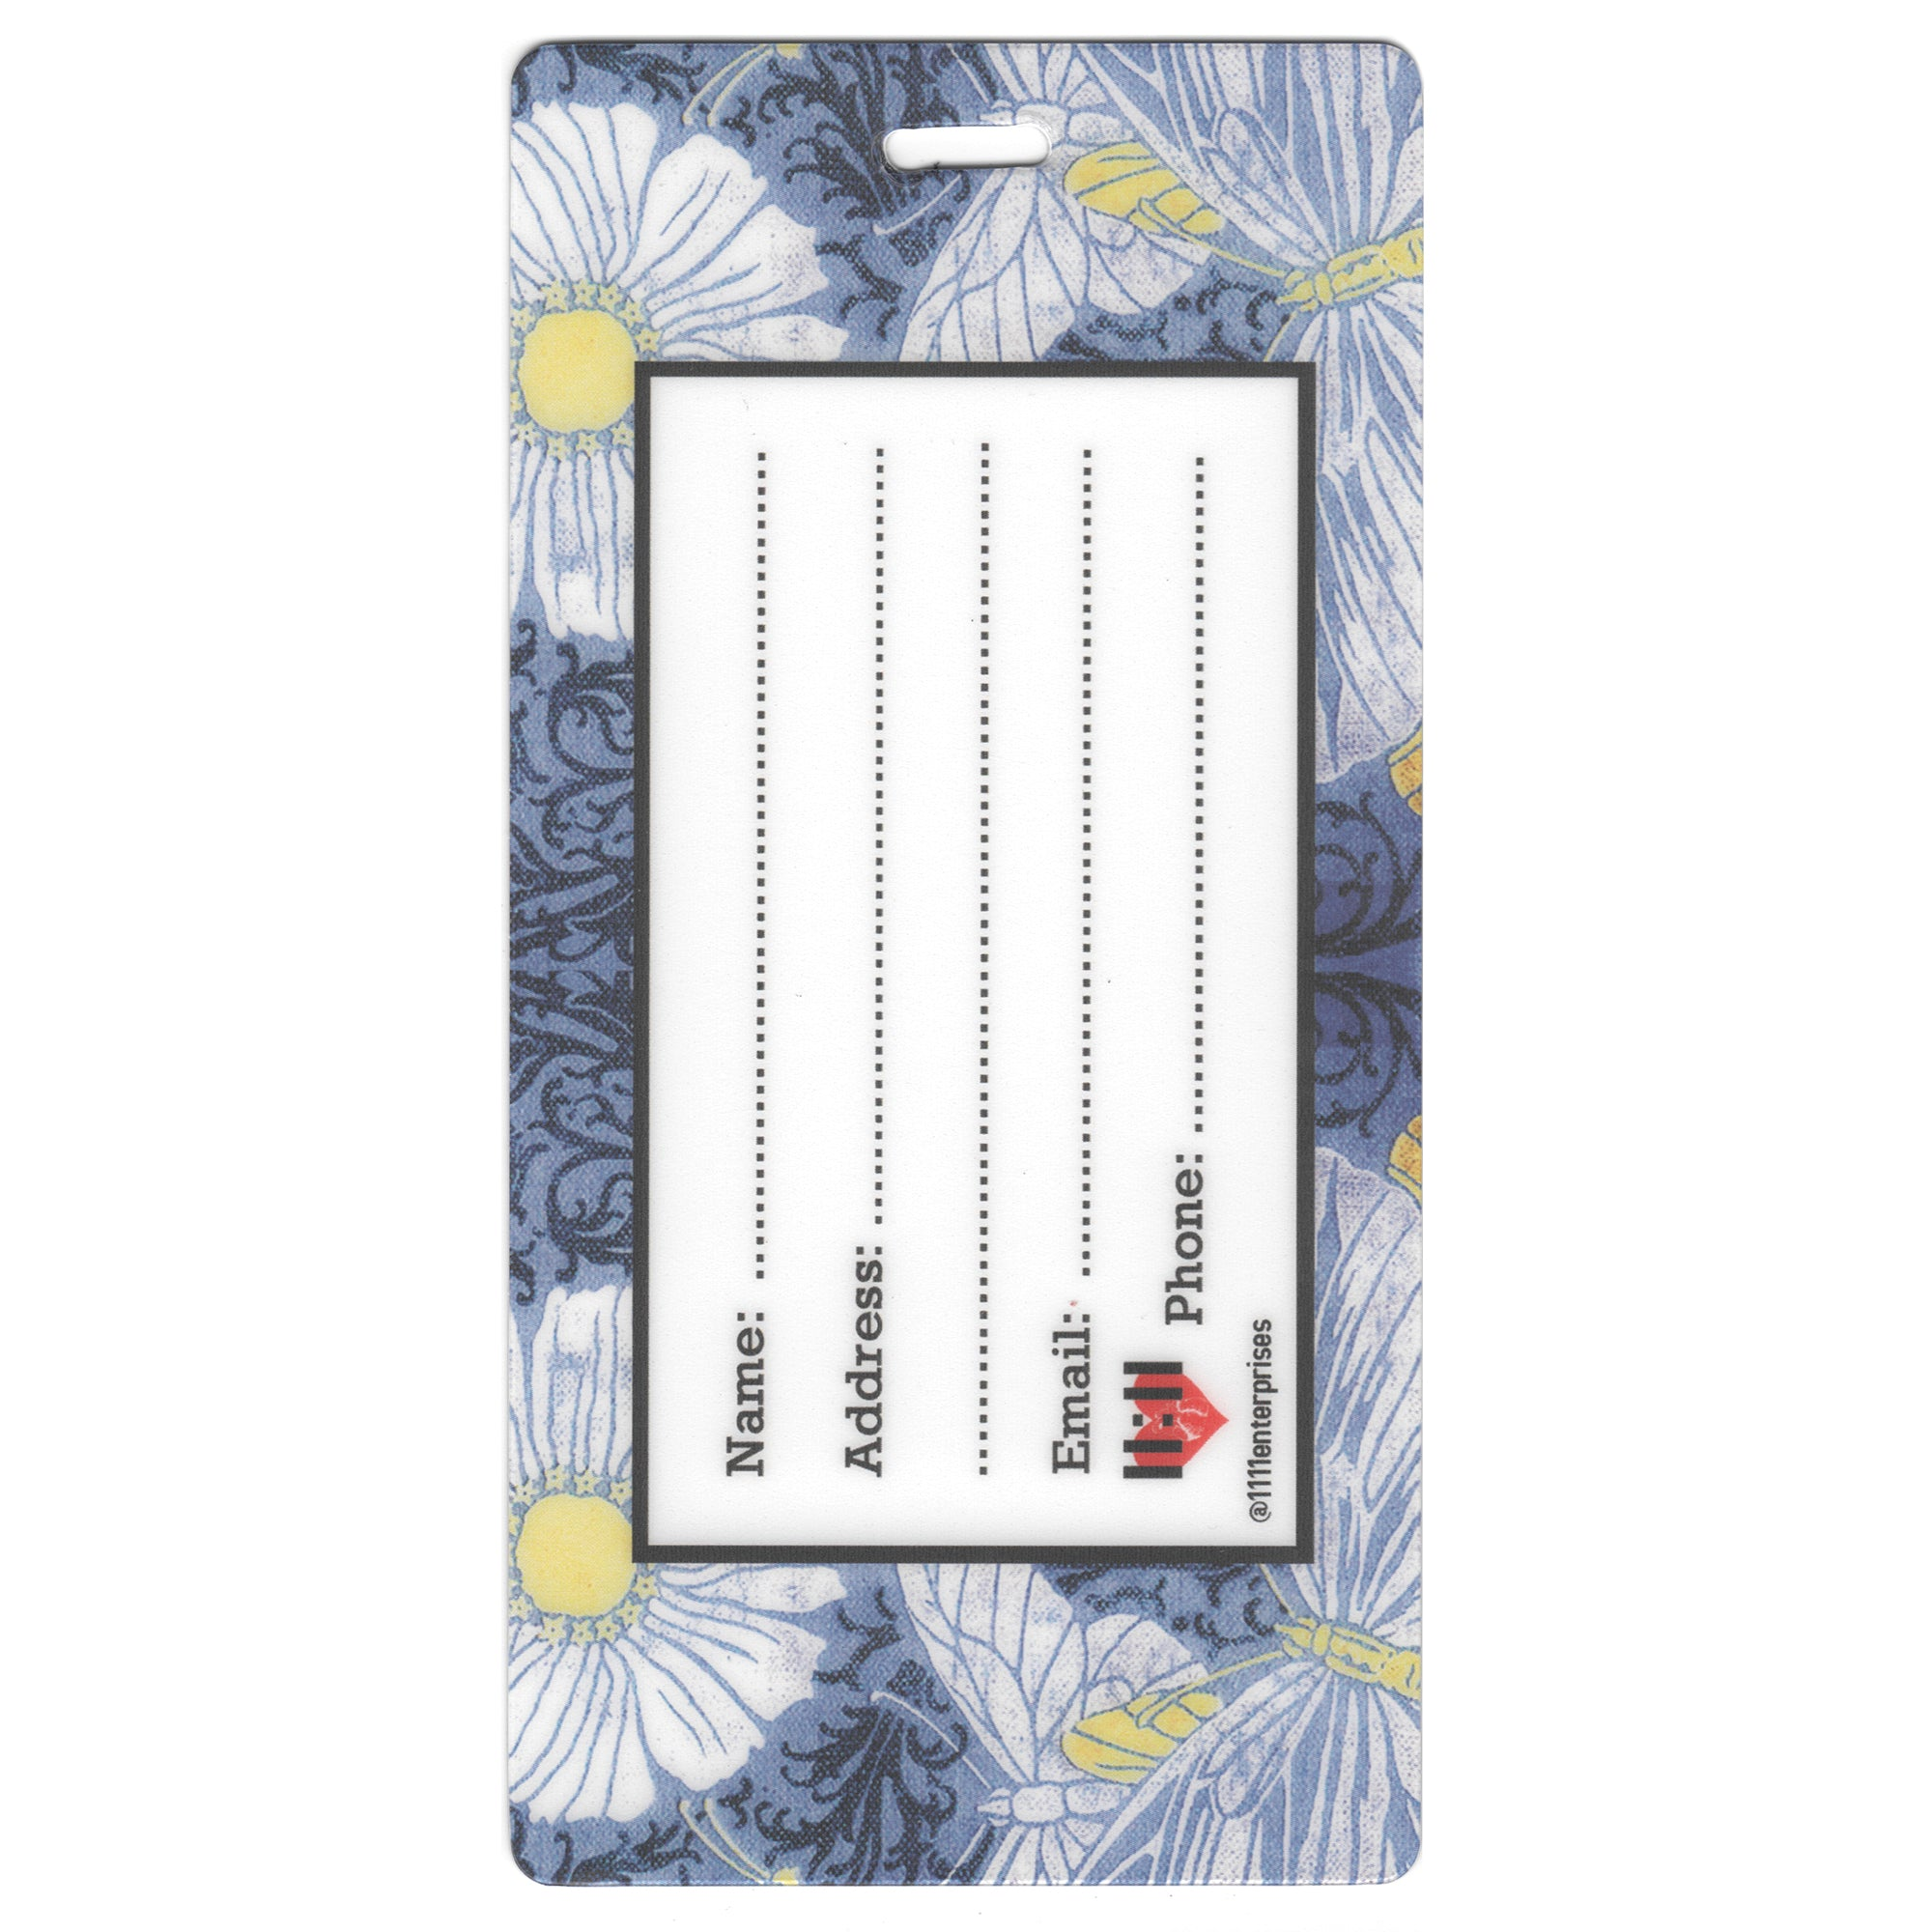 Butterfly Book Luggage Bag Tag Set - 2 pc, Large by 11:11 Enterprises